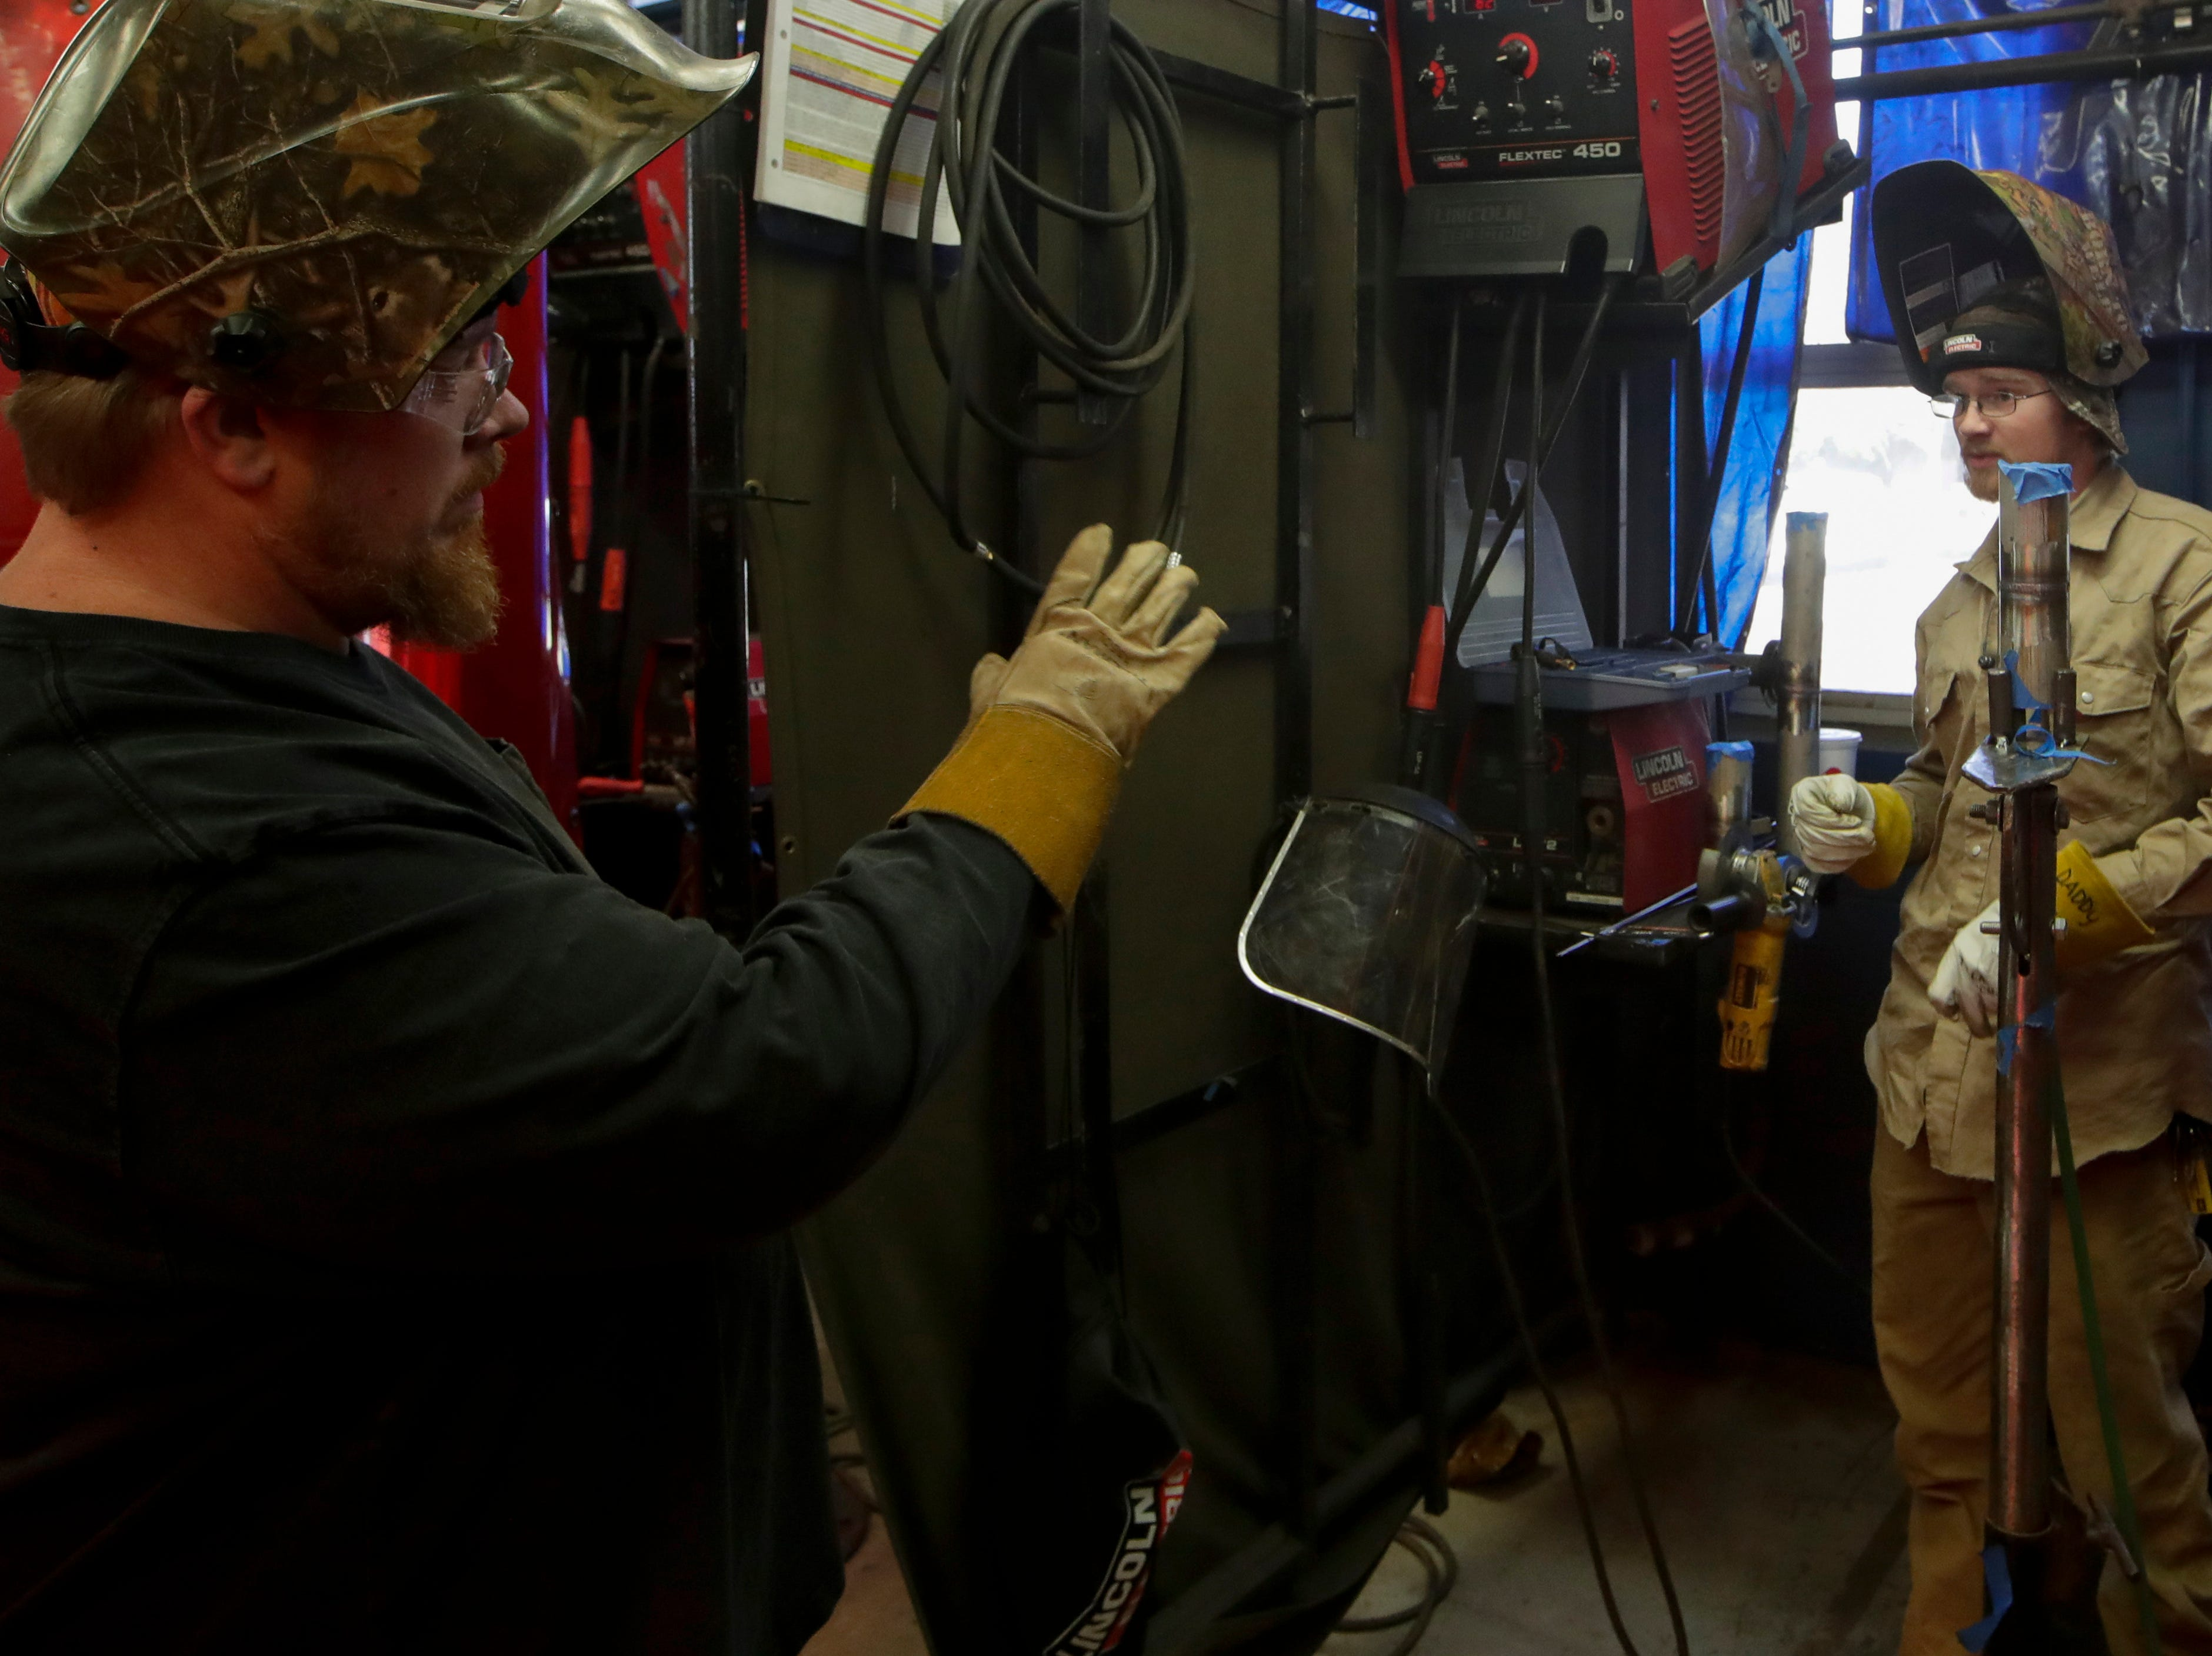 Advanced welding instructor Milford Sims talks with Hunter Bulls, an advanced welding student Wednesday, Jan. 9, 2019 at Lively Technical Center which has been approved by the Leon County School Board to change it's name to Lively Technical College.